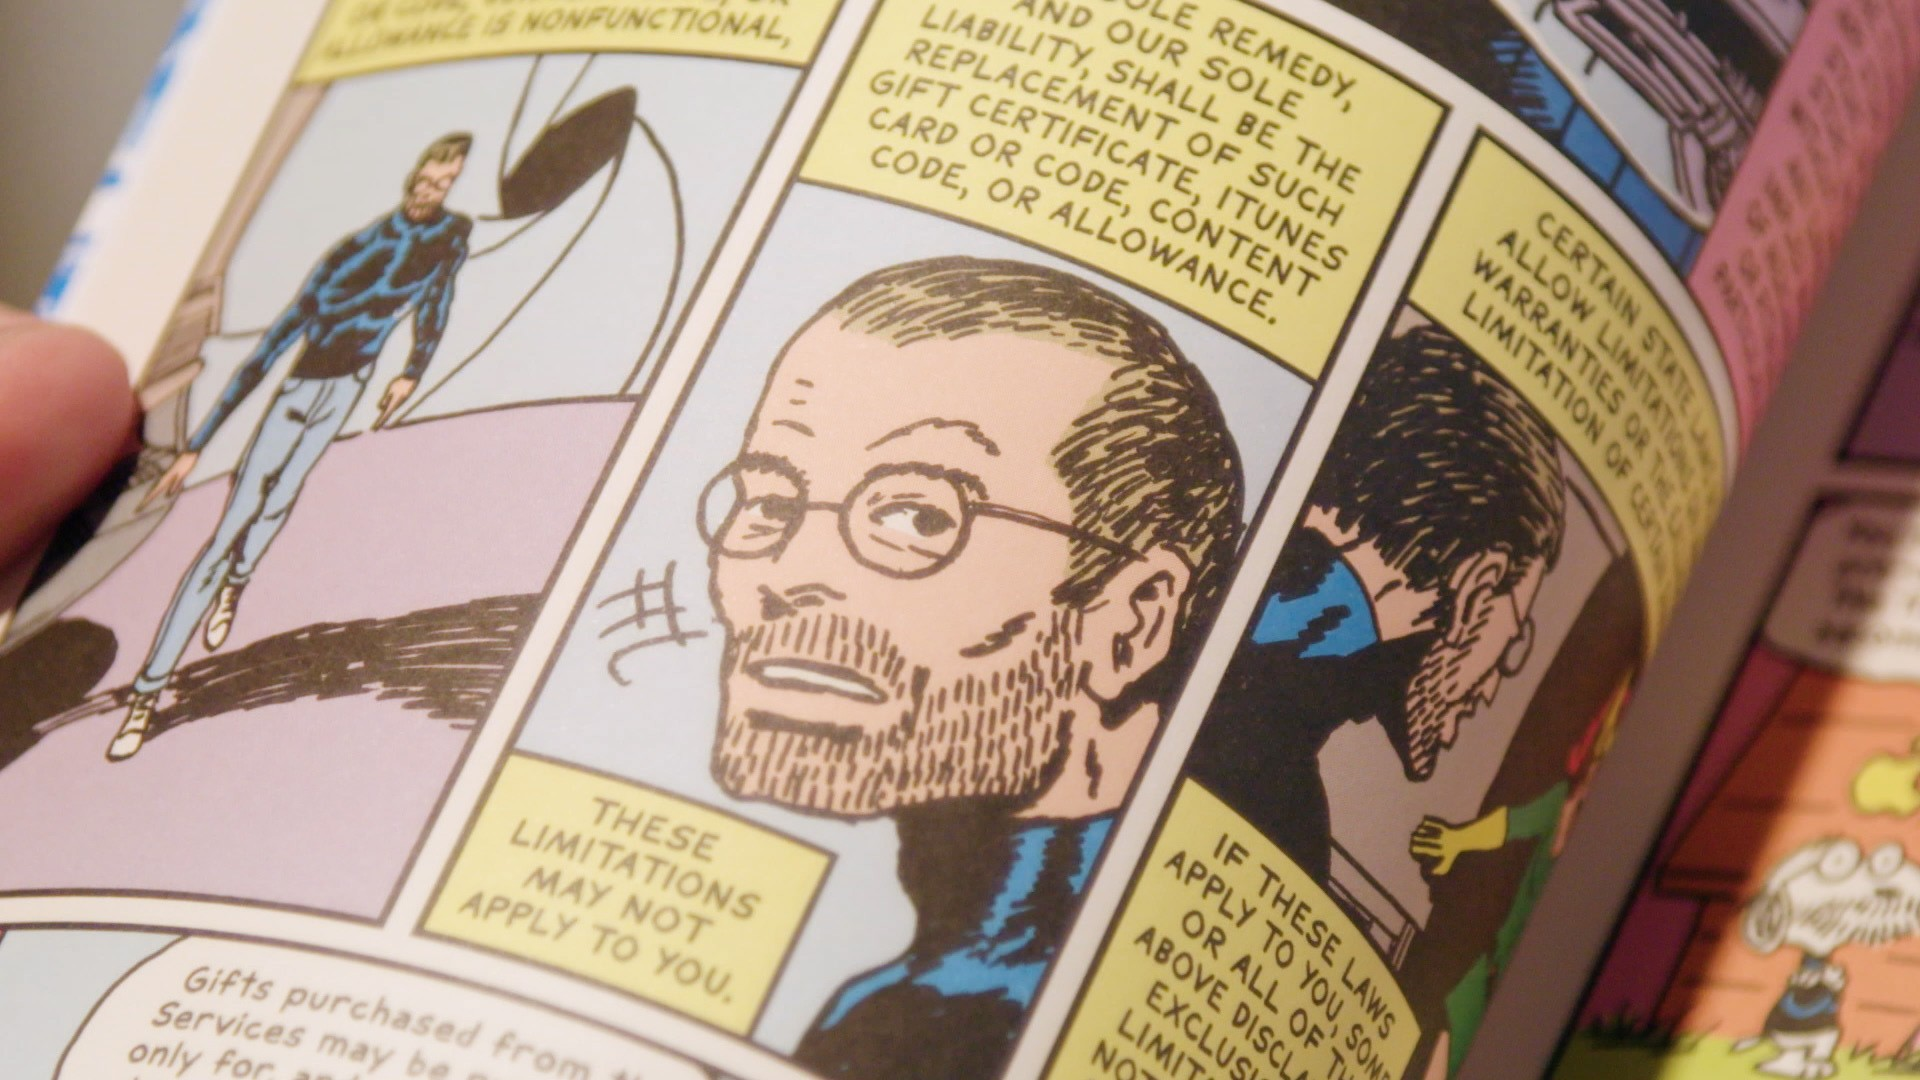 This Artist Turned iTunes's Terms and Conditions into a Graphic Novel